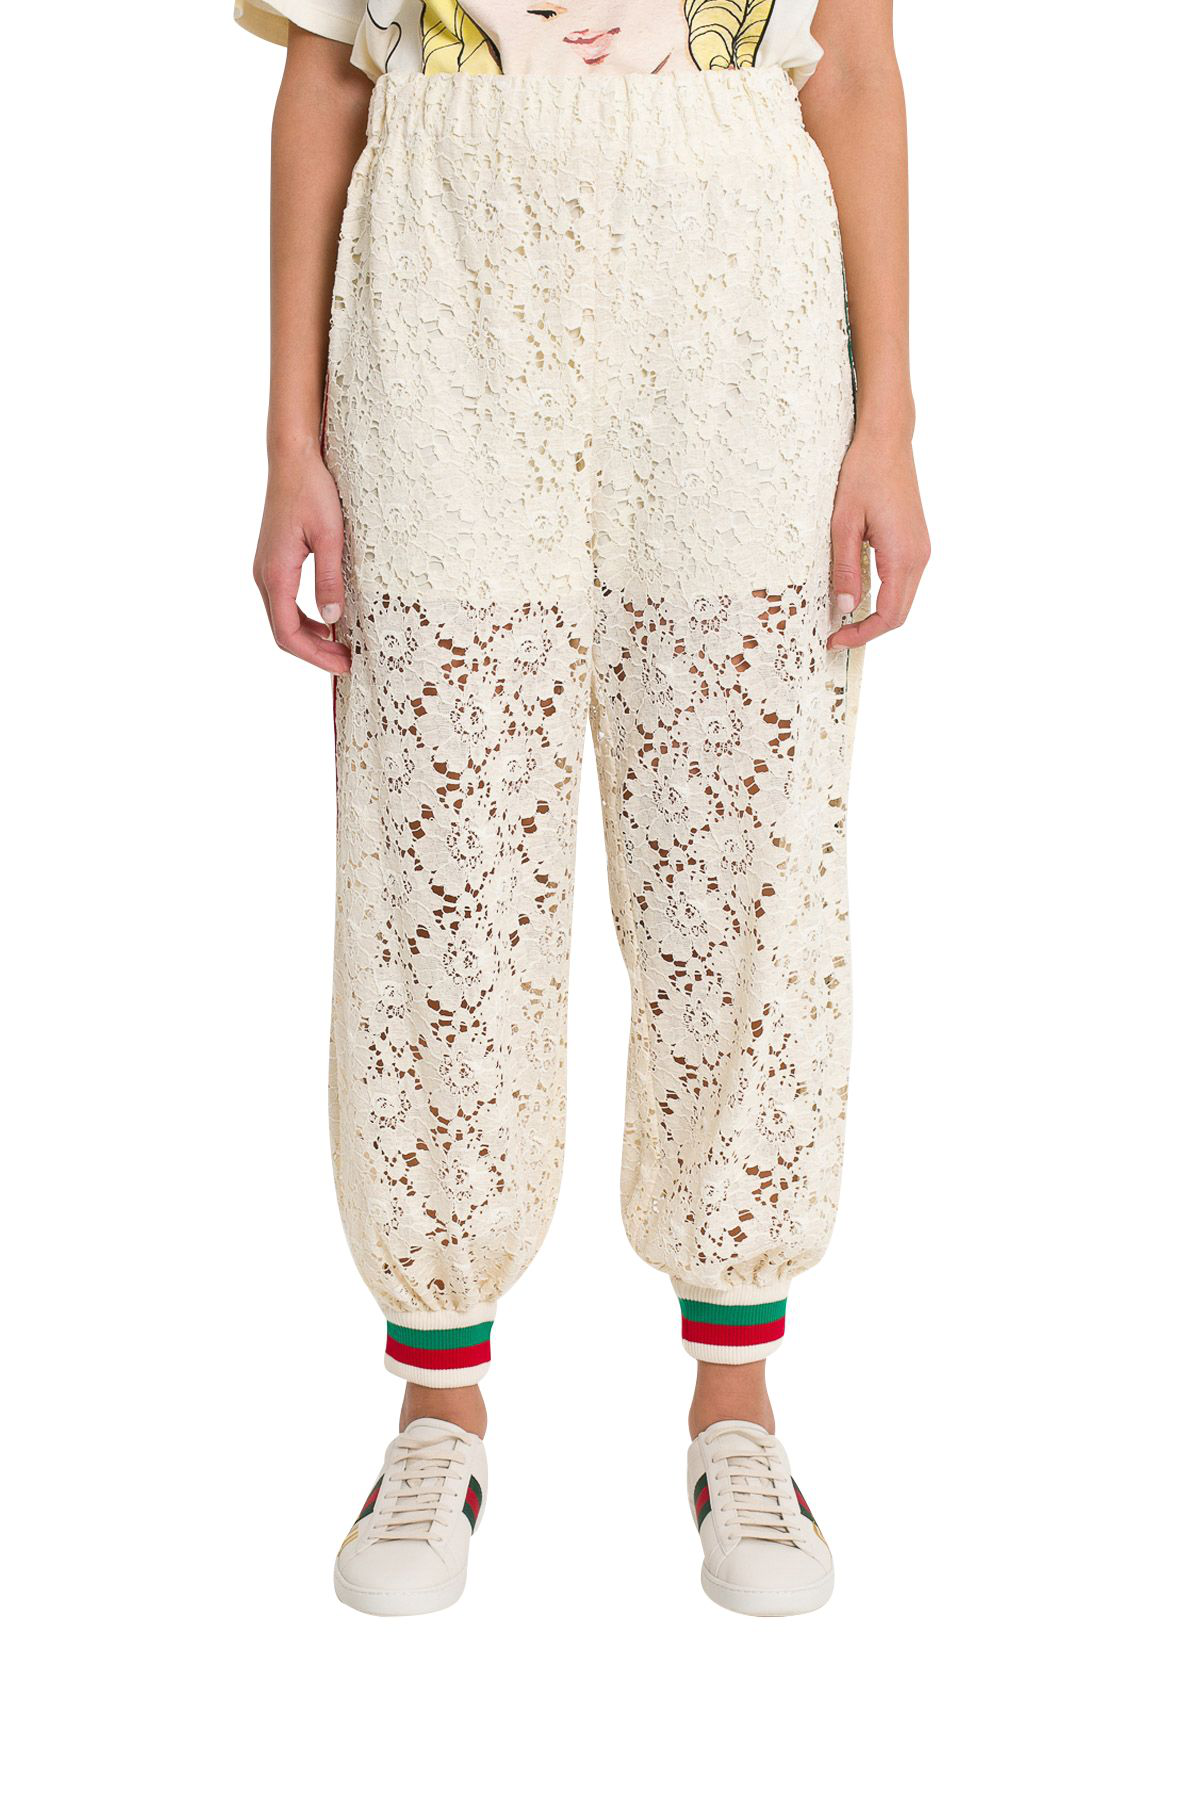 3df9a39303fa Gucci Flower Lace Jogging Pant In Panna | ModeSens